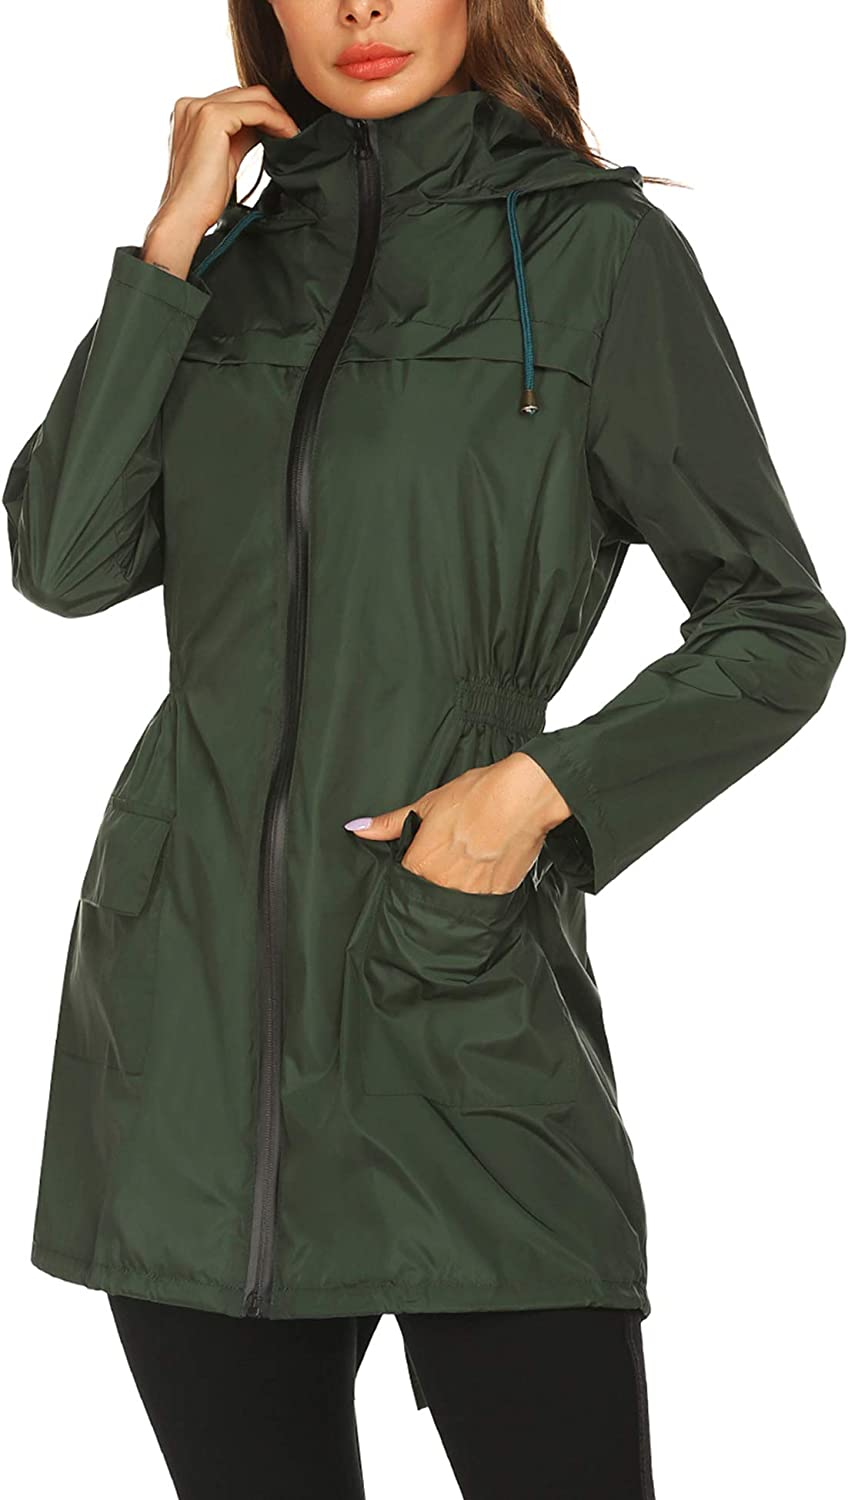 NAVISKIN Womens Raincoat Waterproof Rain Jacket Lightweight Packable Windbreaker Hooded Coats